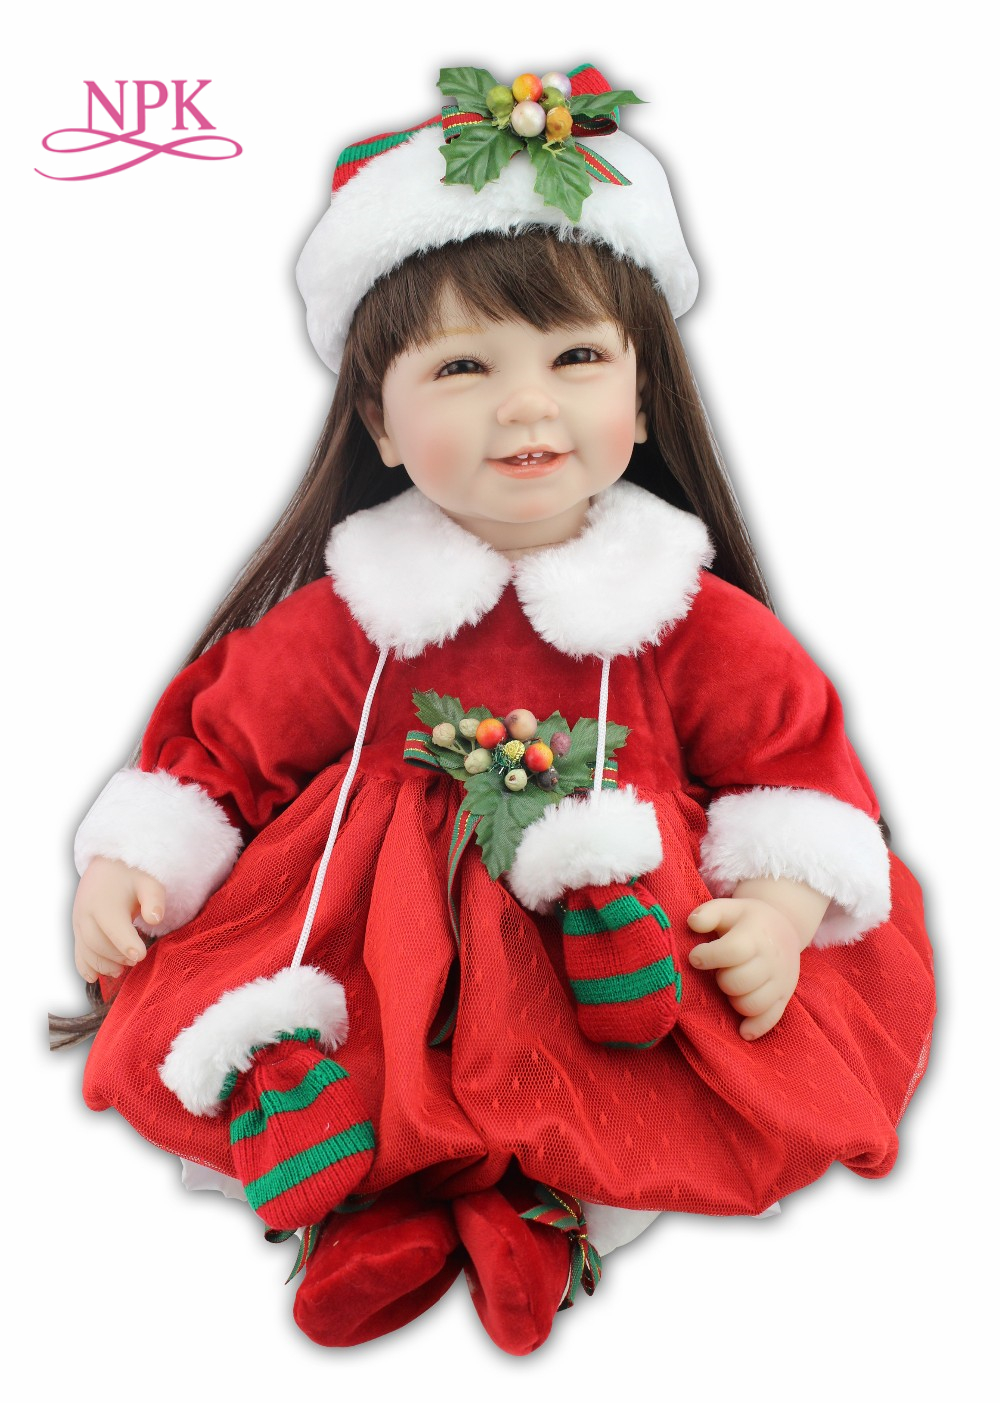 NPK lifelike reborn toddler doll with Christmas hat and Red skirt fashion doll girl s gift